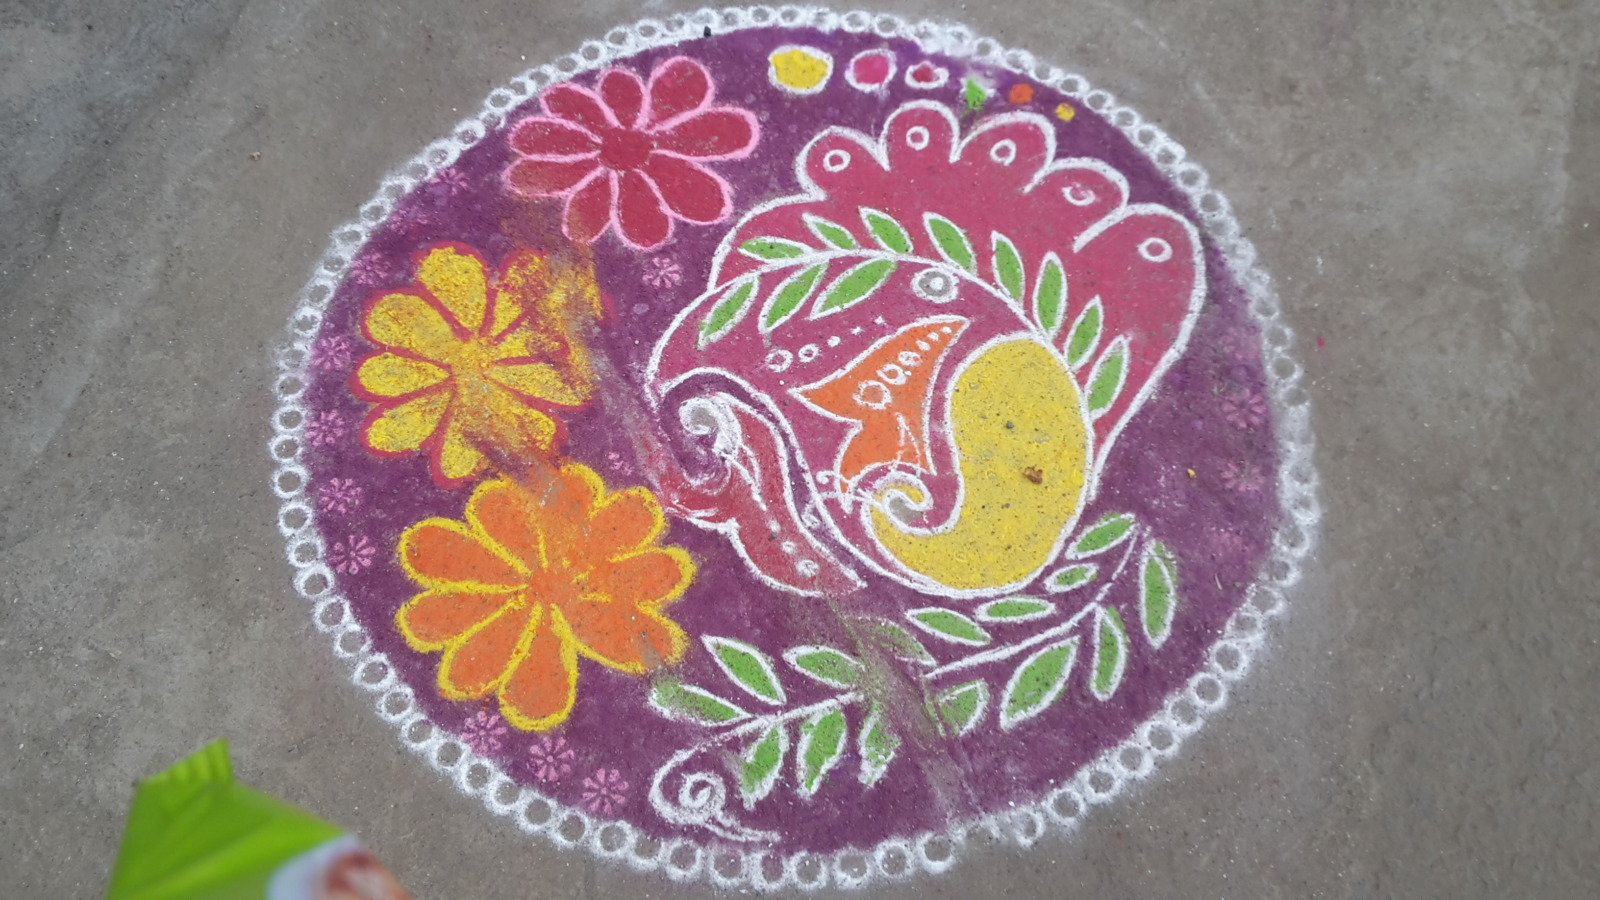 More drawings outside the shops in Dhule.